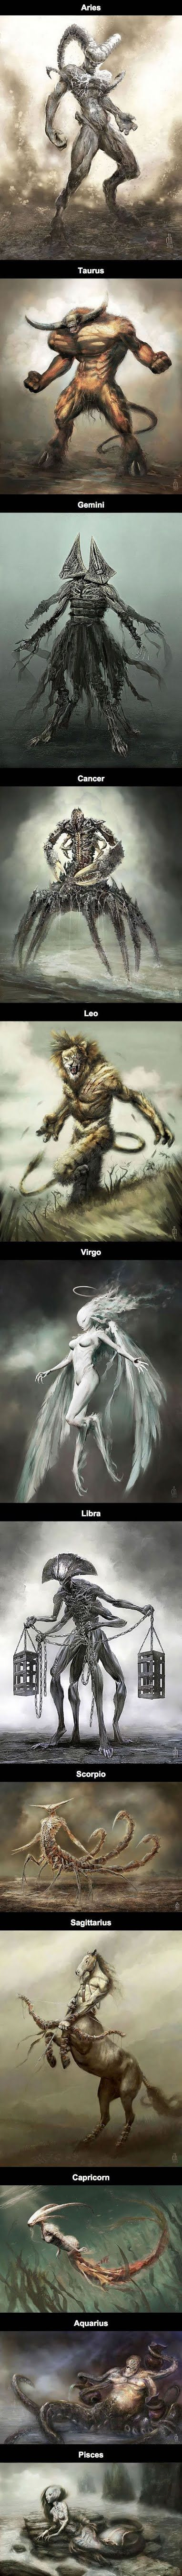 Awesome Zodiac drawings (By Damon Hellandbrand) Happy Stars Shine The Brightest -{ Maybeanothername }×